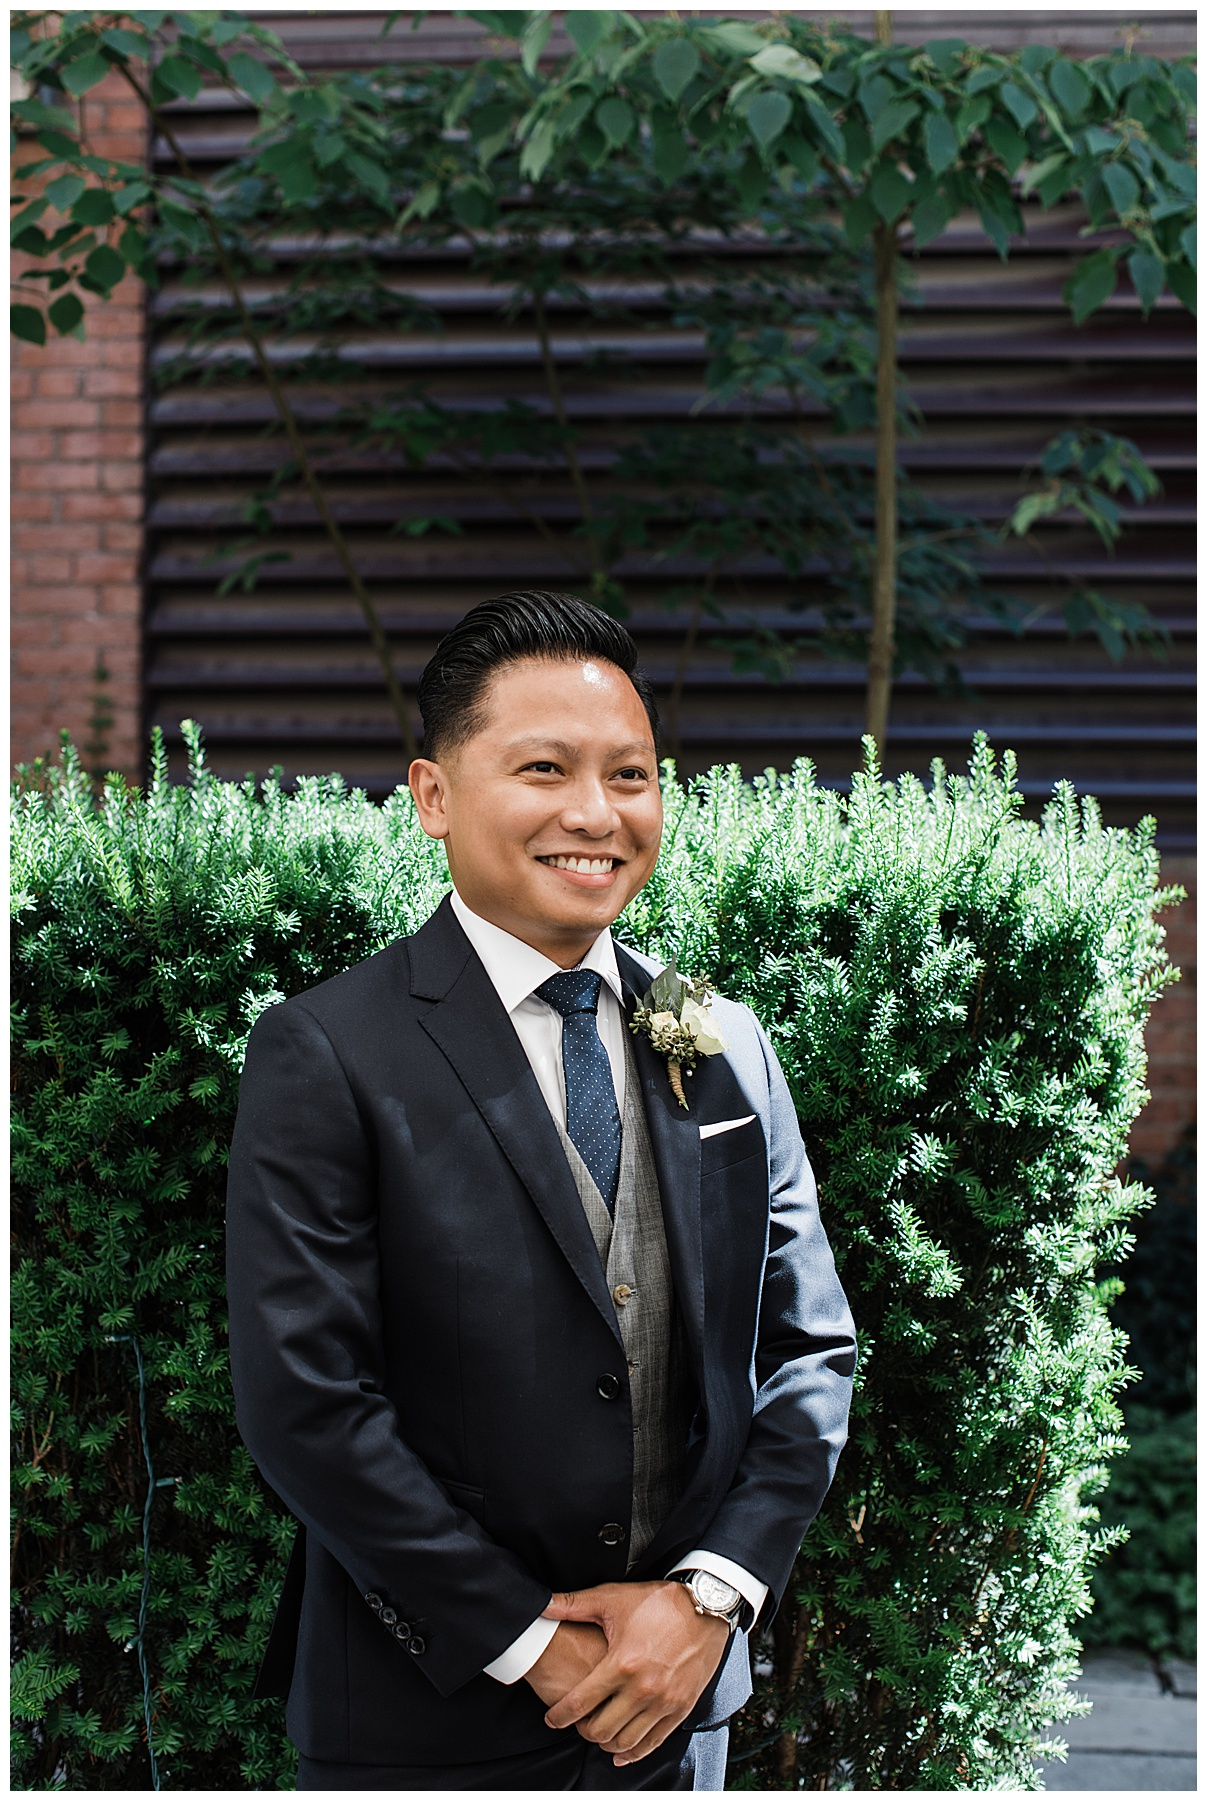 Groom standing at alter| The George Restaurant Wedding| Toronto Wedding Photographer| Ontario wedding photographer| 3photography